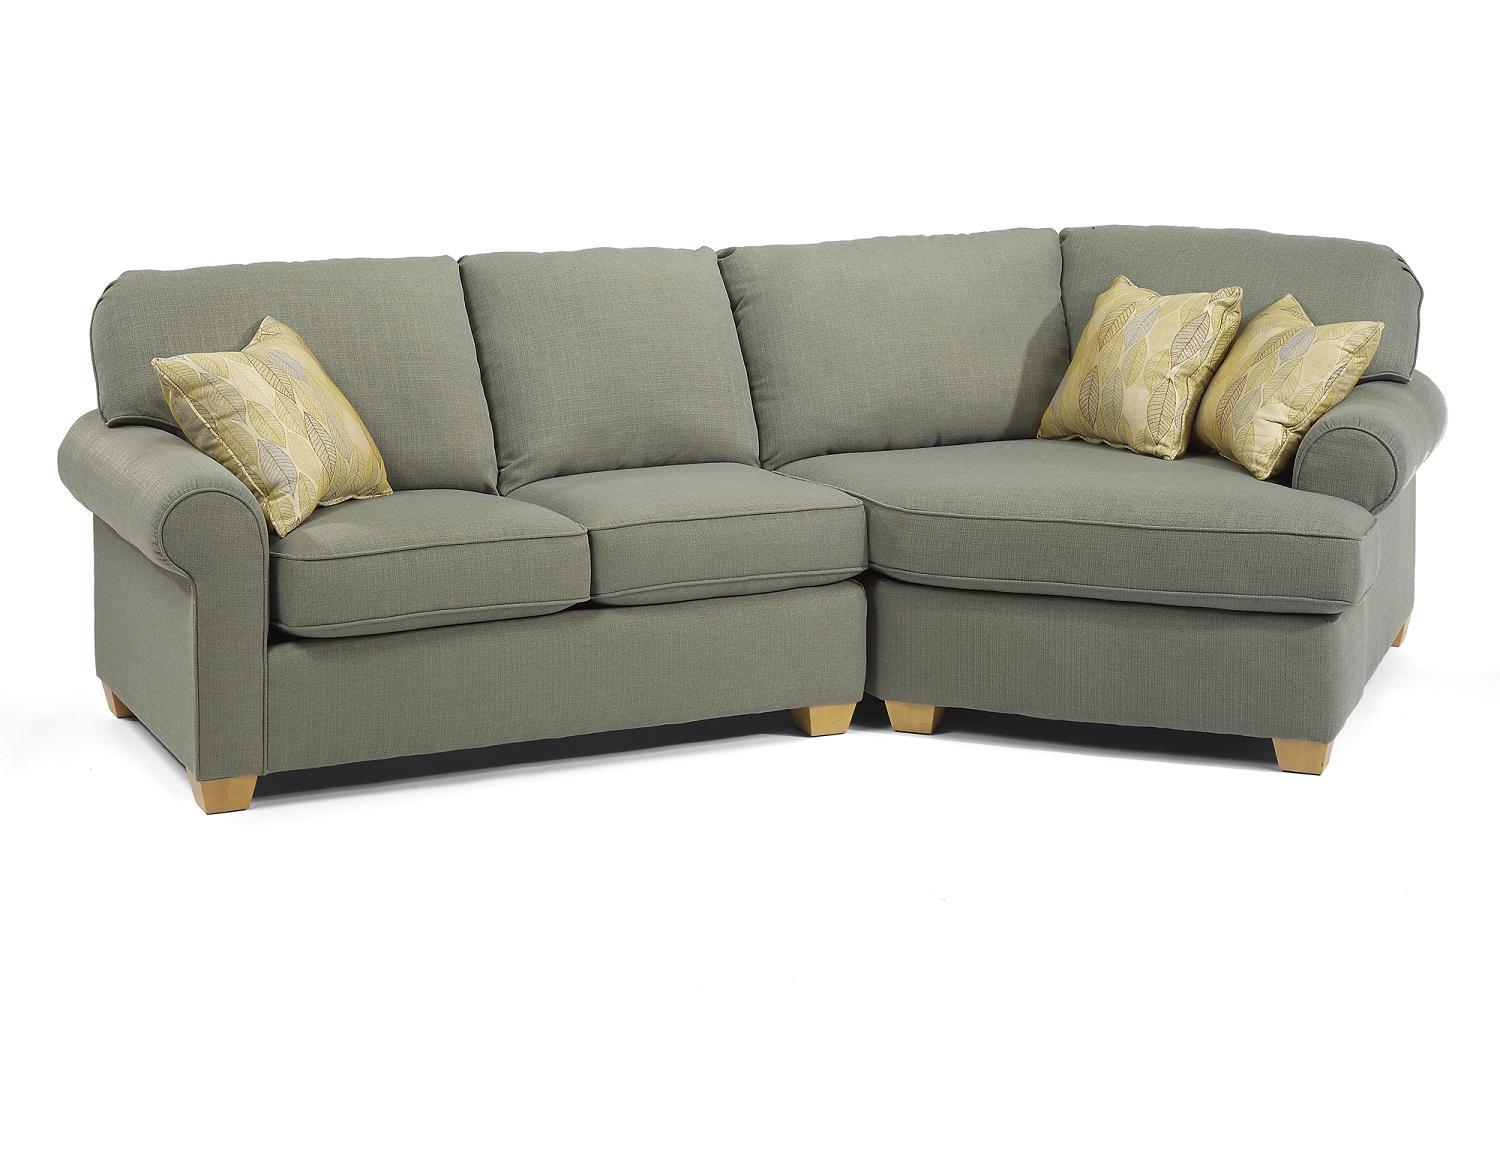 Small Sectional Sofa With Chaise | Home Decor & Furniture In Cheap Small Sectionals (View 2 of 15)